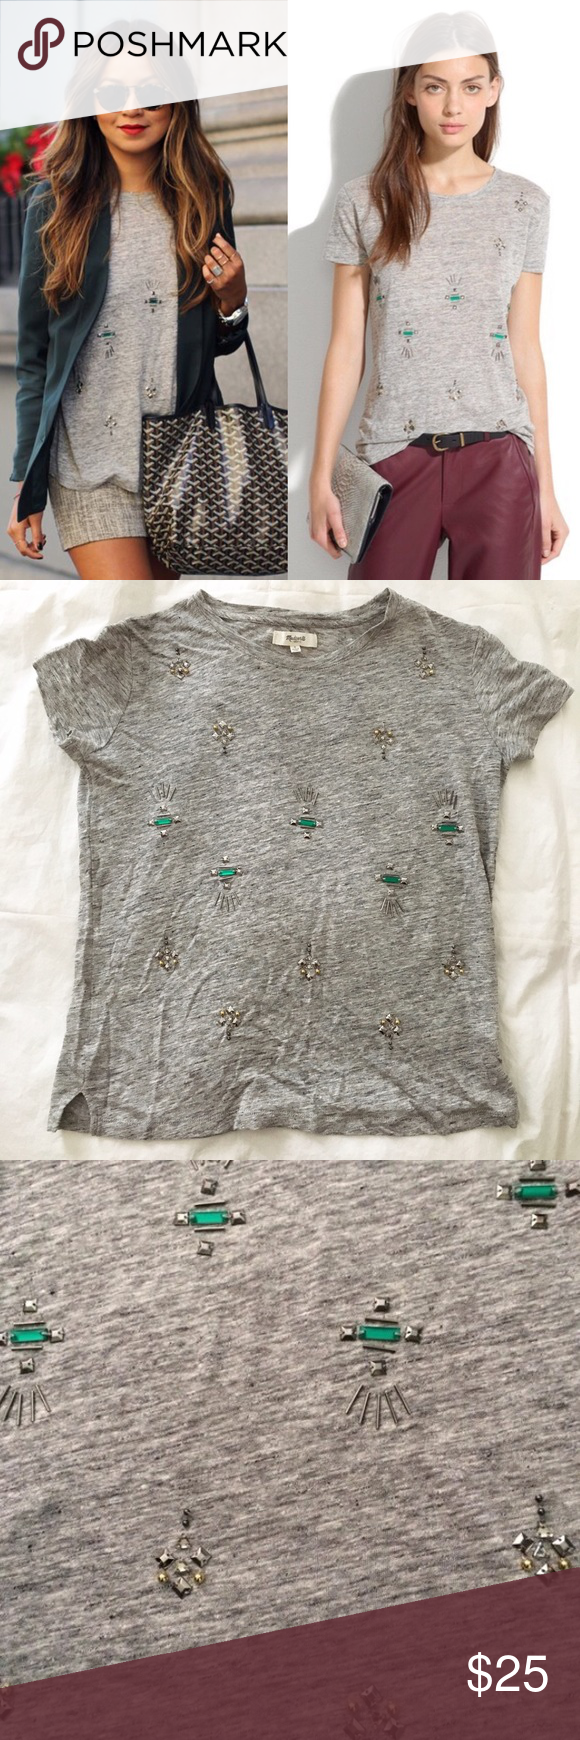 Madewell Jeweled Tee Wanna feel like a blogger? This jeweled tee is the same tee on Sincerely Jules. I got this tee as a gift but never worn or washed. The tee still feels very soft and the embellishments are in perfect condition. Madewell Tops Tees - Short Sleeve